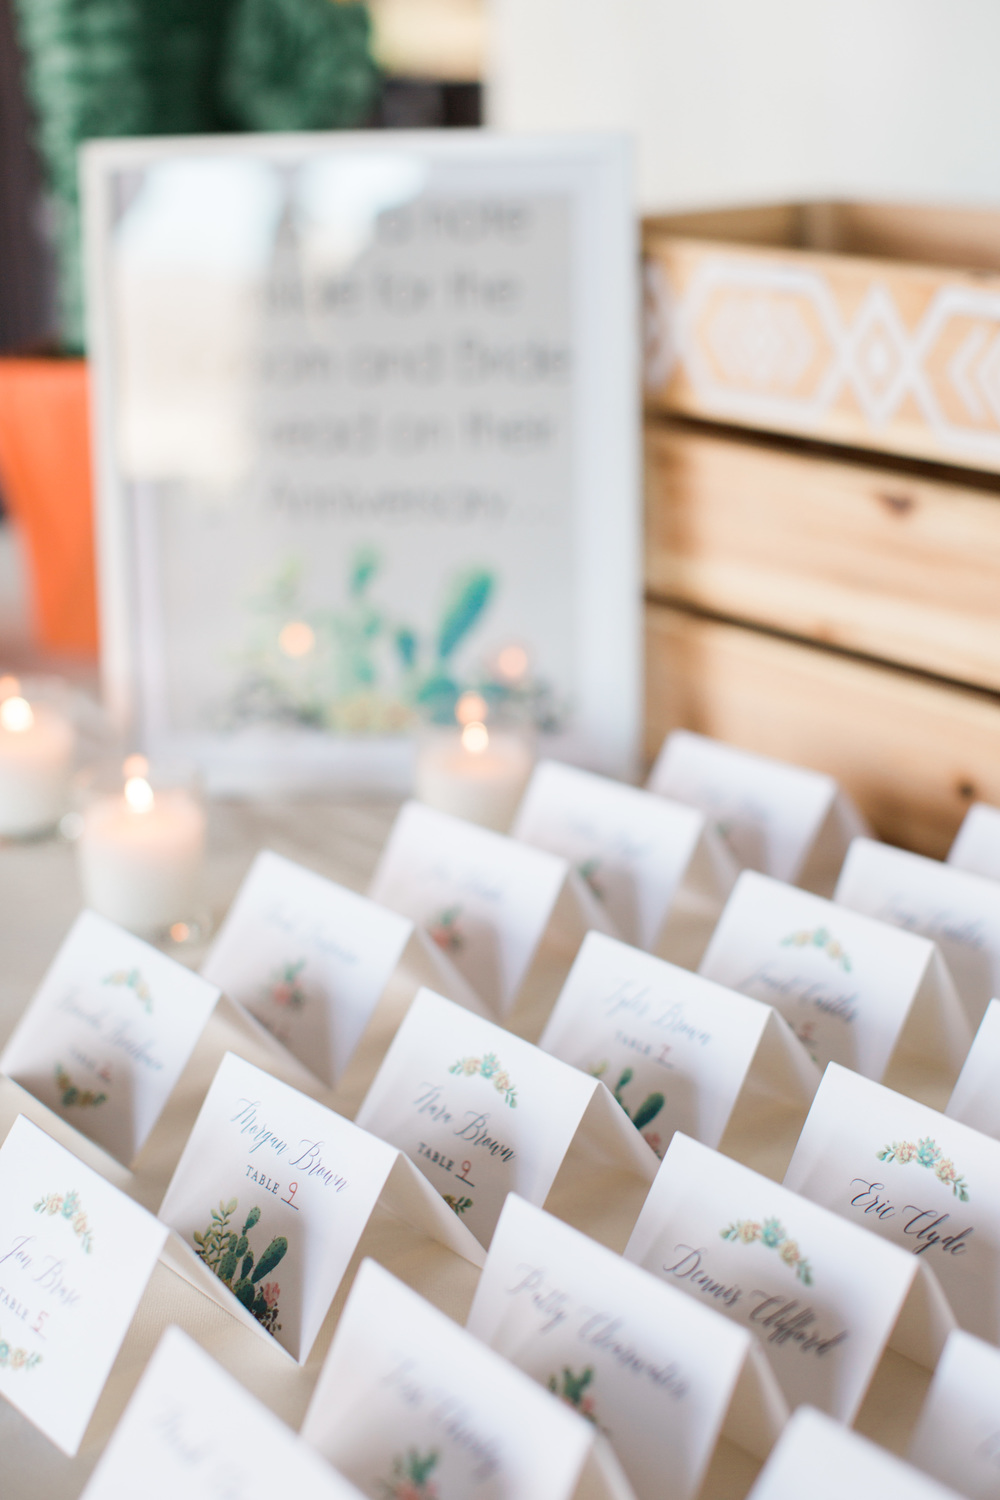 Gorgeous place cards design by briedumaisdesigns.com